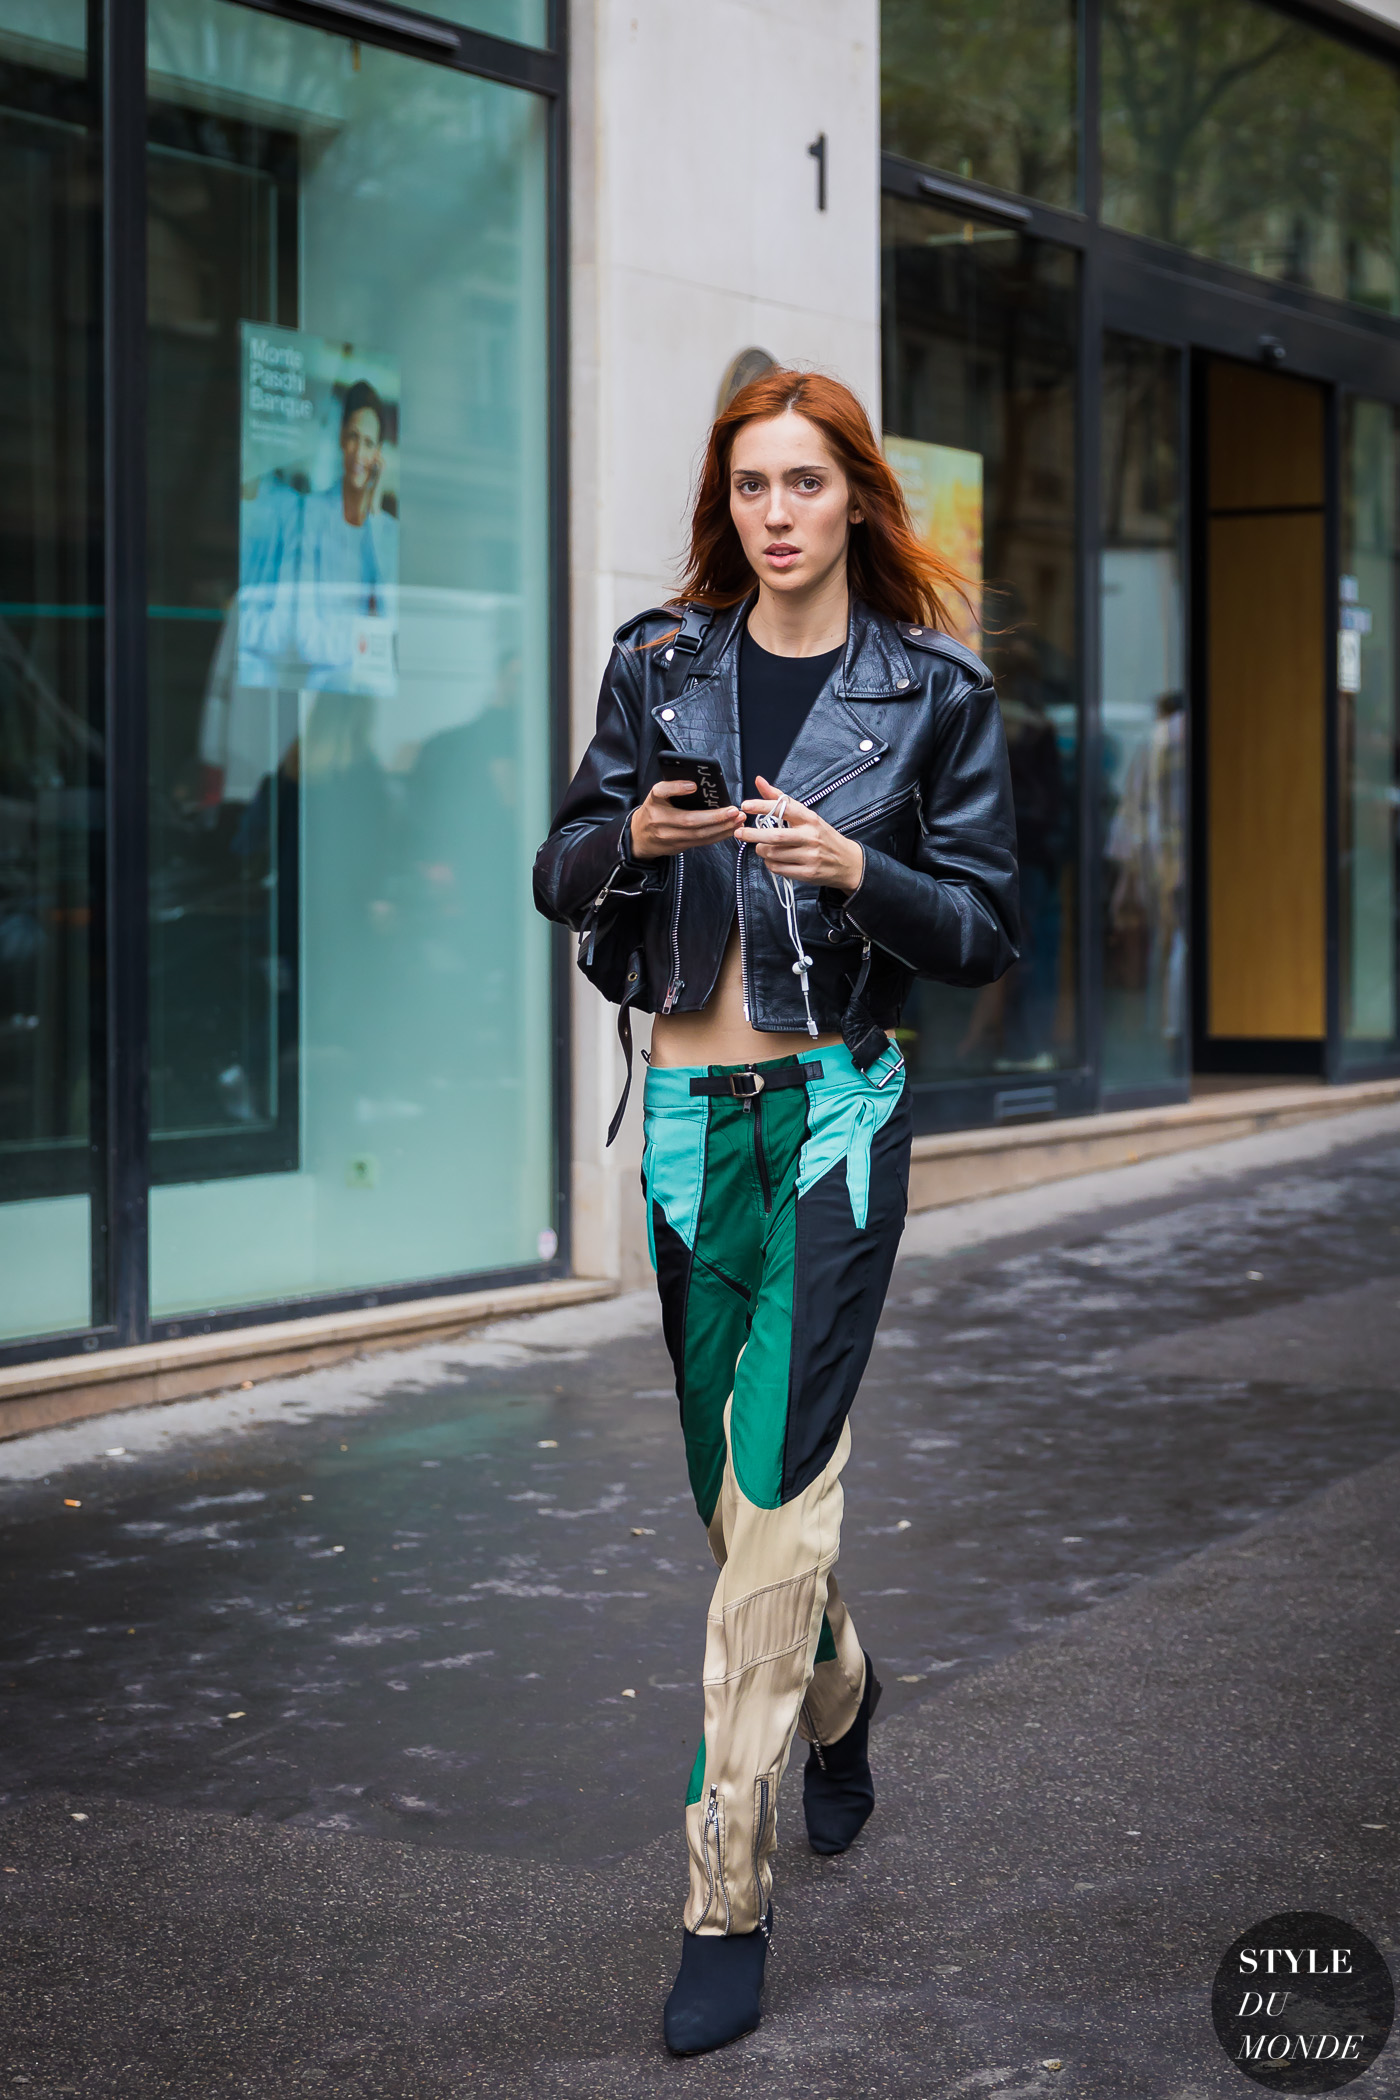 Teddy Quinlivan by STYLEDUMONDE Street Style Fashion Photography_48A8351